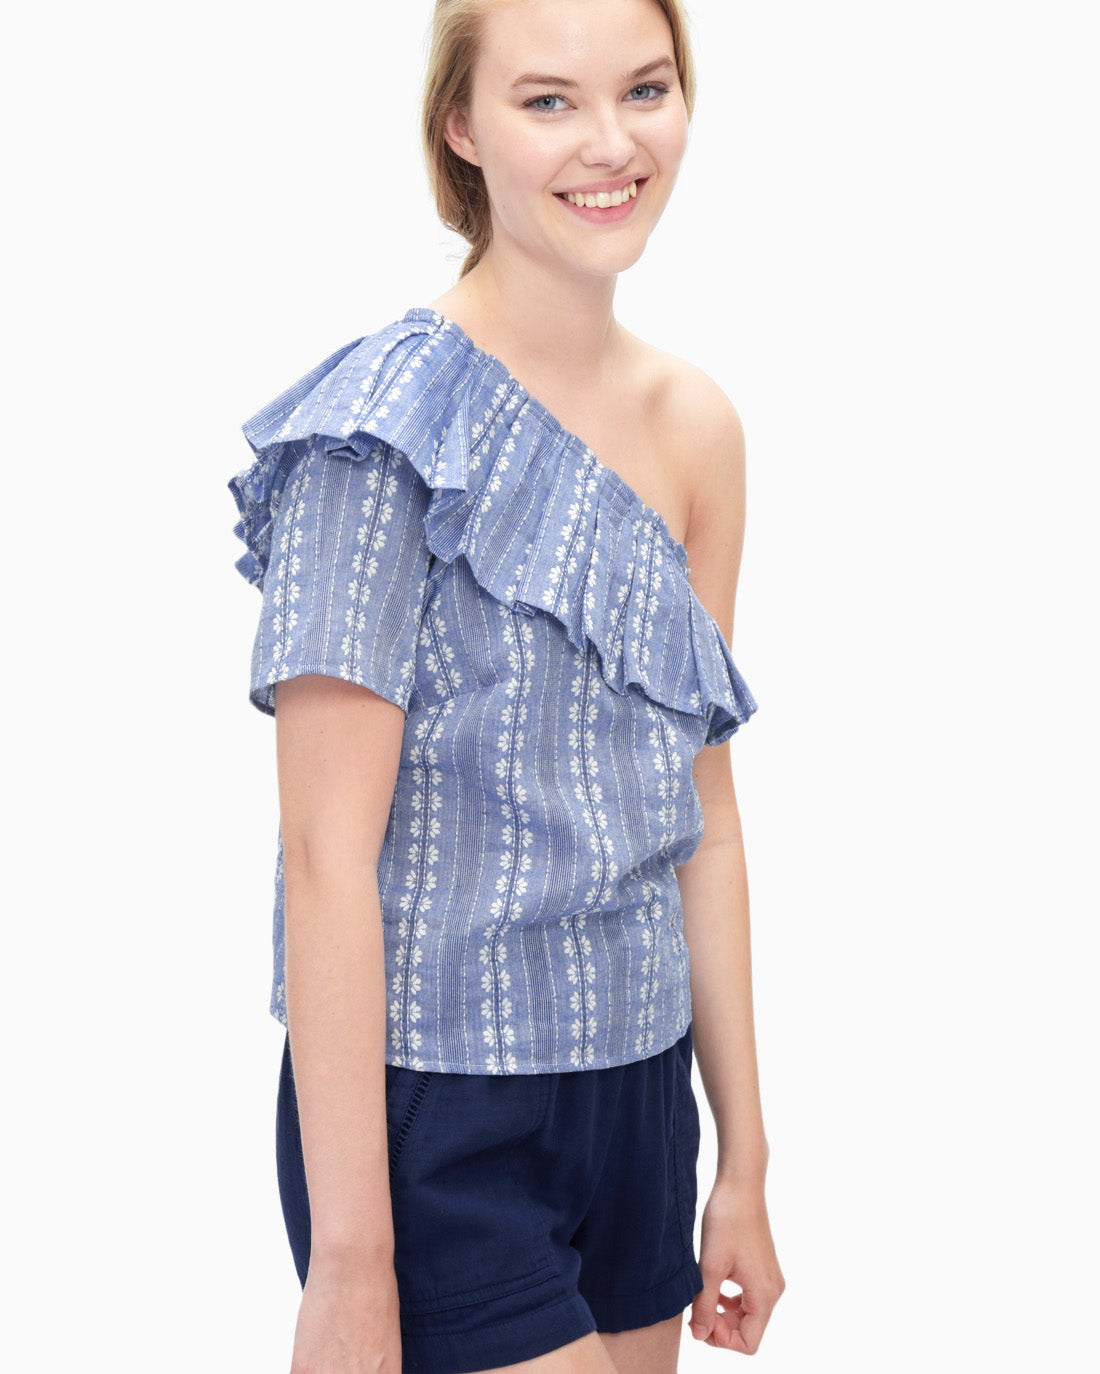 Splendid Women's Chambray One Shoulder Top